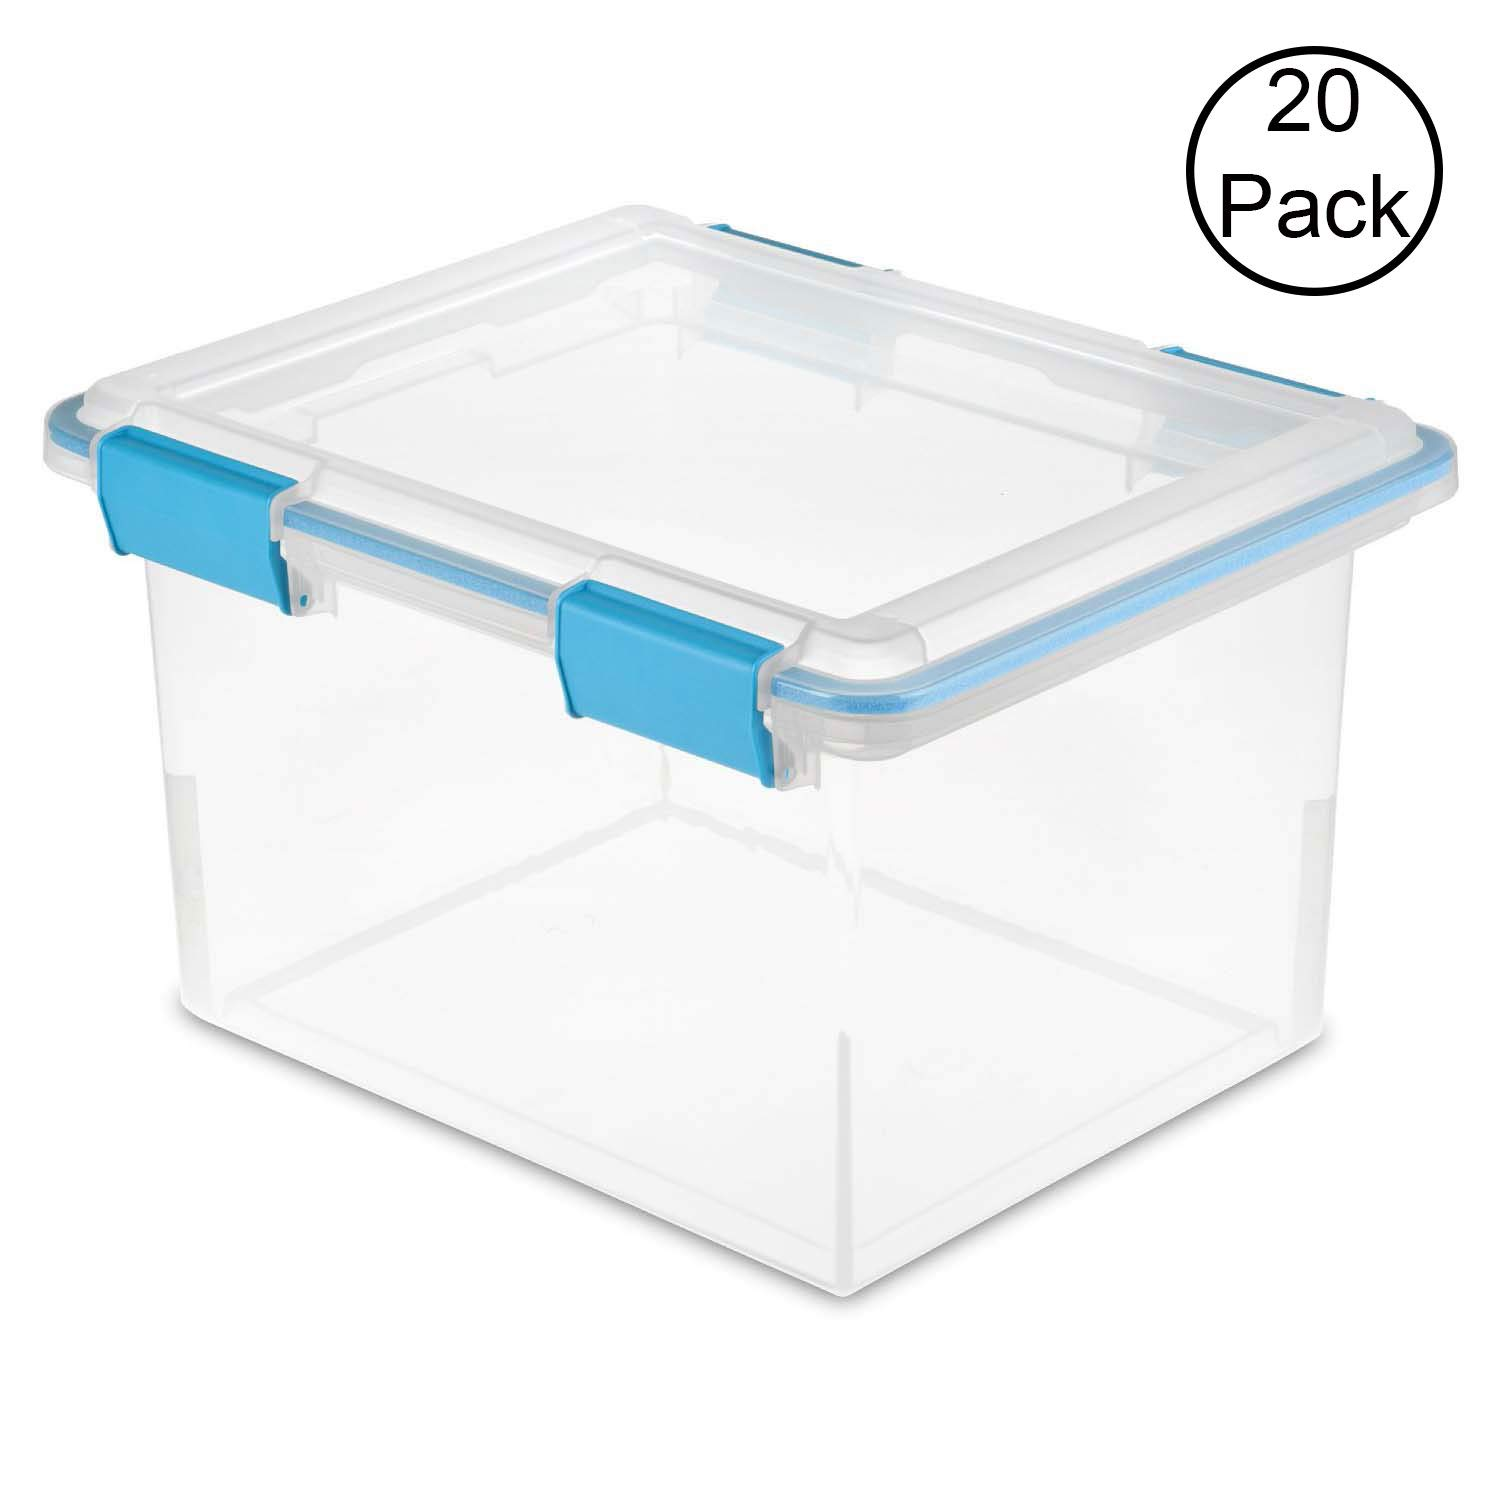 STERILITE 19334304 Clear 32 Quart Gasket Box with Clear Base and Lid (20 Pack)